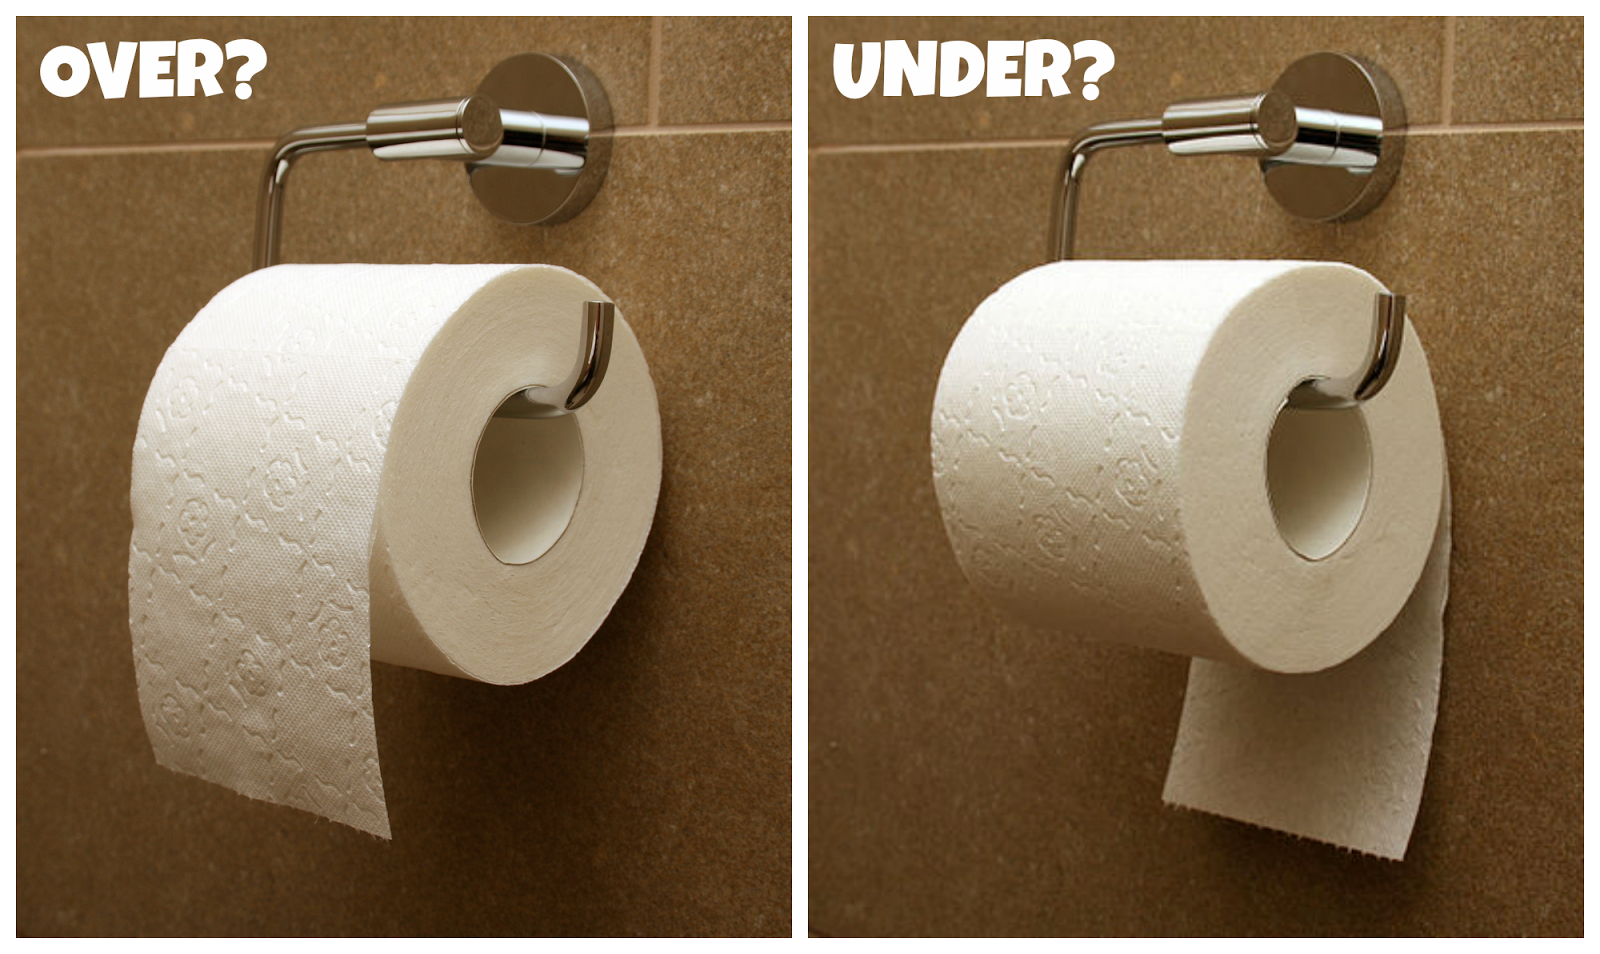 Image result for toilet paper over or under meme